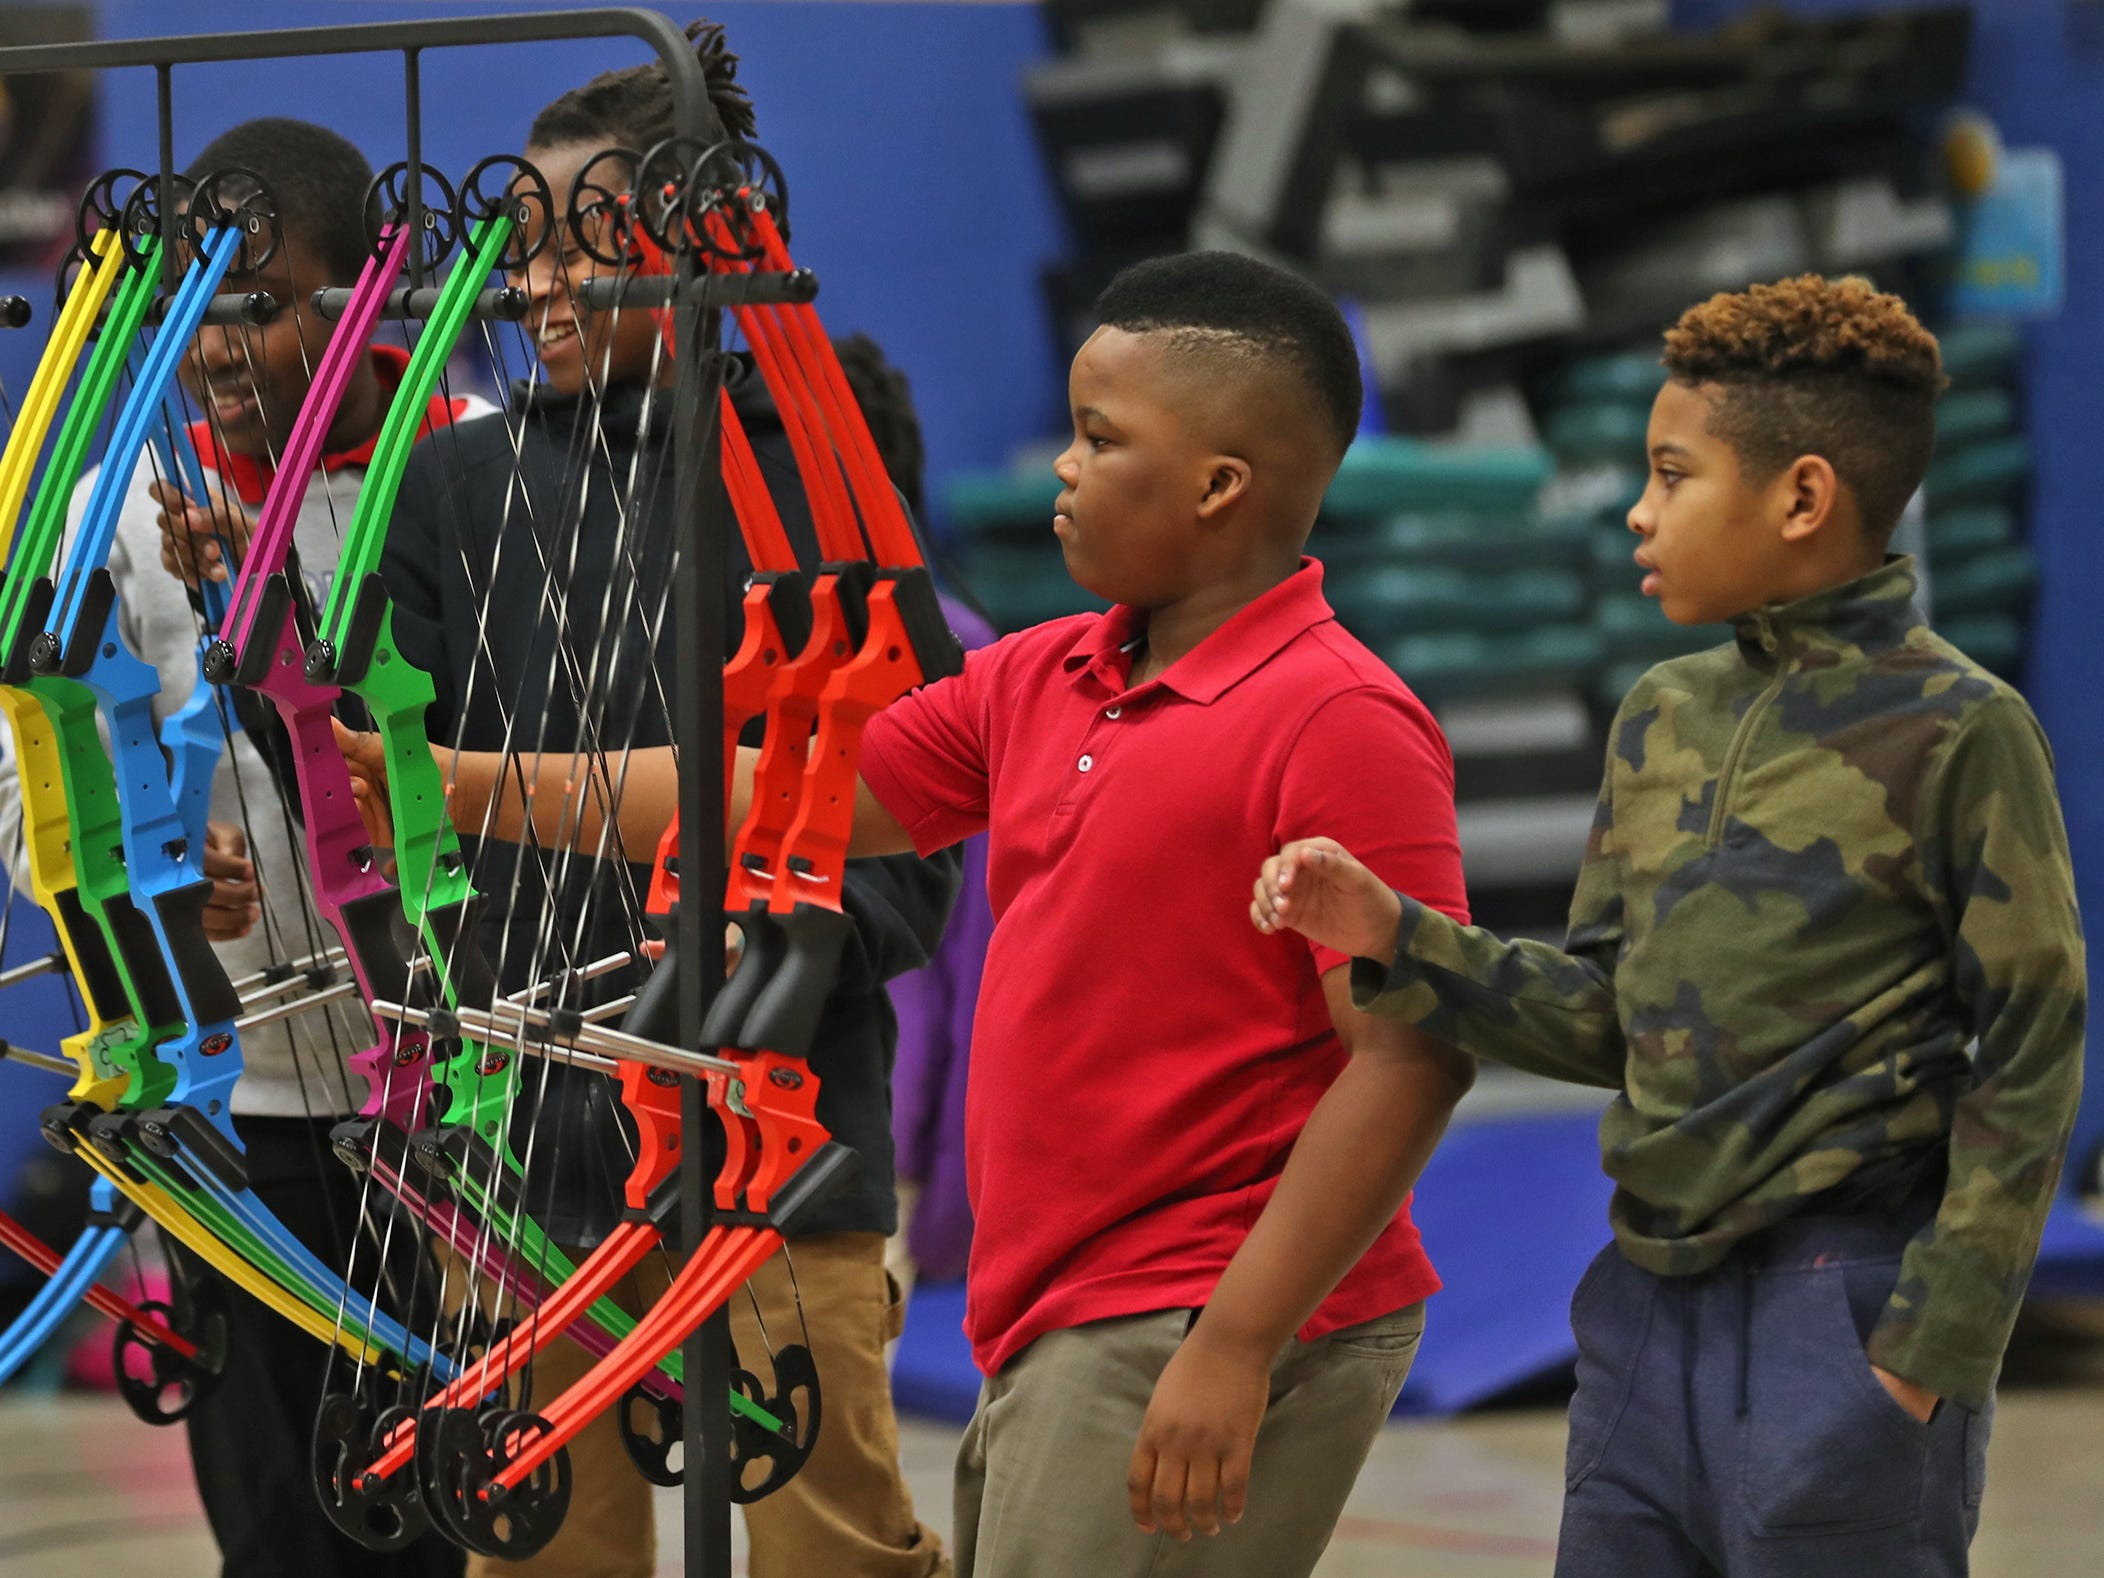 Oluwatunmise Ogbeide, left, and Courtney Washington grab their bows to shoot, during archery class at Lew Wallace Elementary IPS 107, Thursday, Dec. 20, 2018.